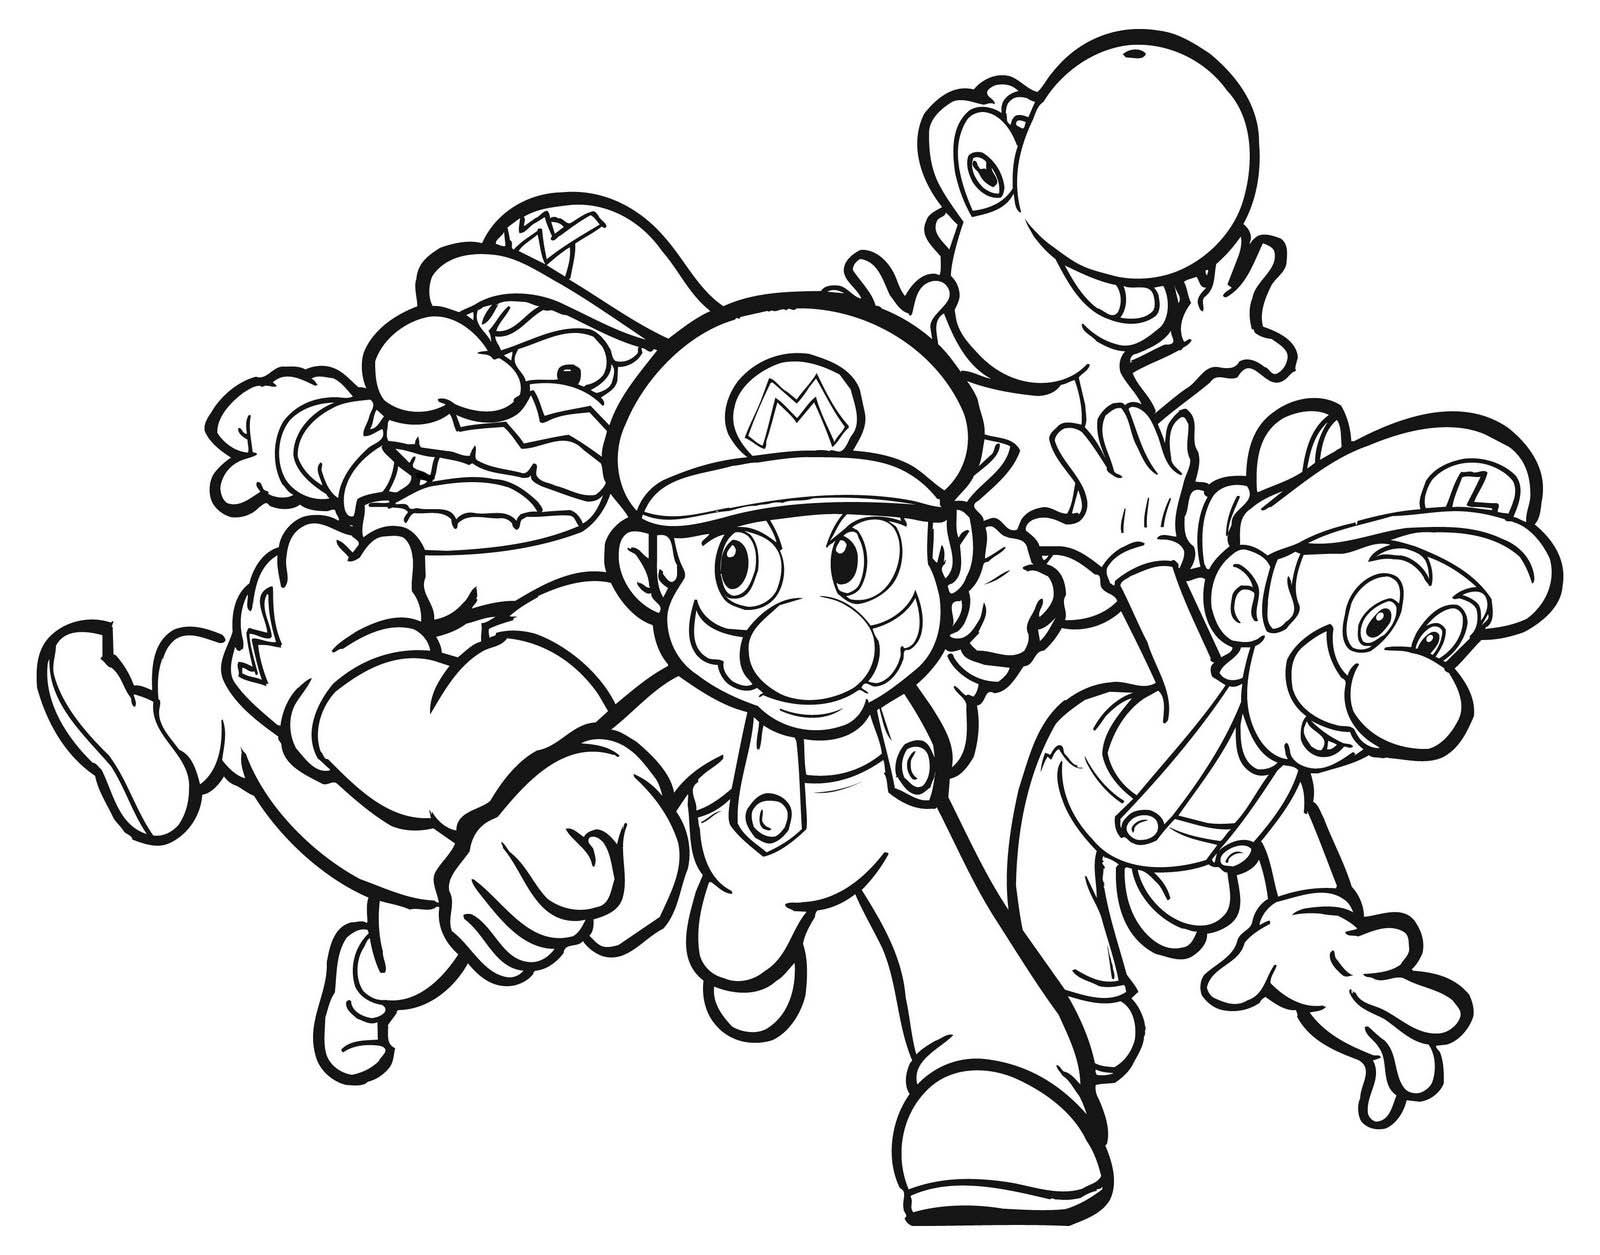 Super Mario Coloring Pages To Print | Kids - Coloring 4 boys ...